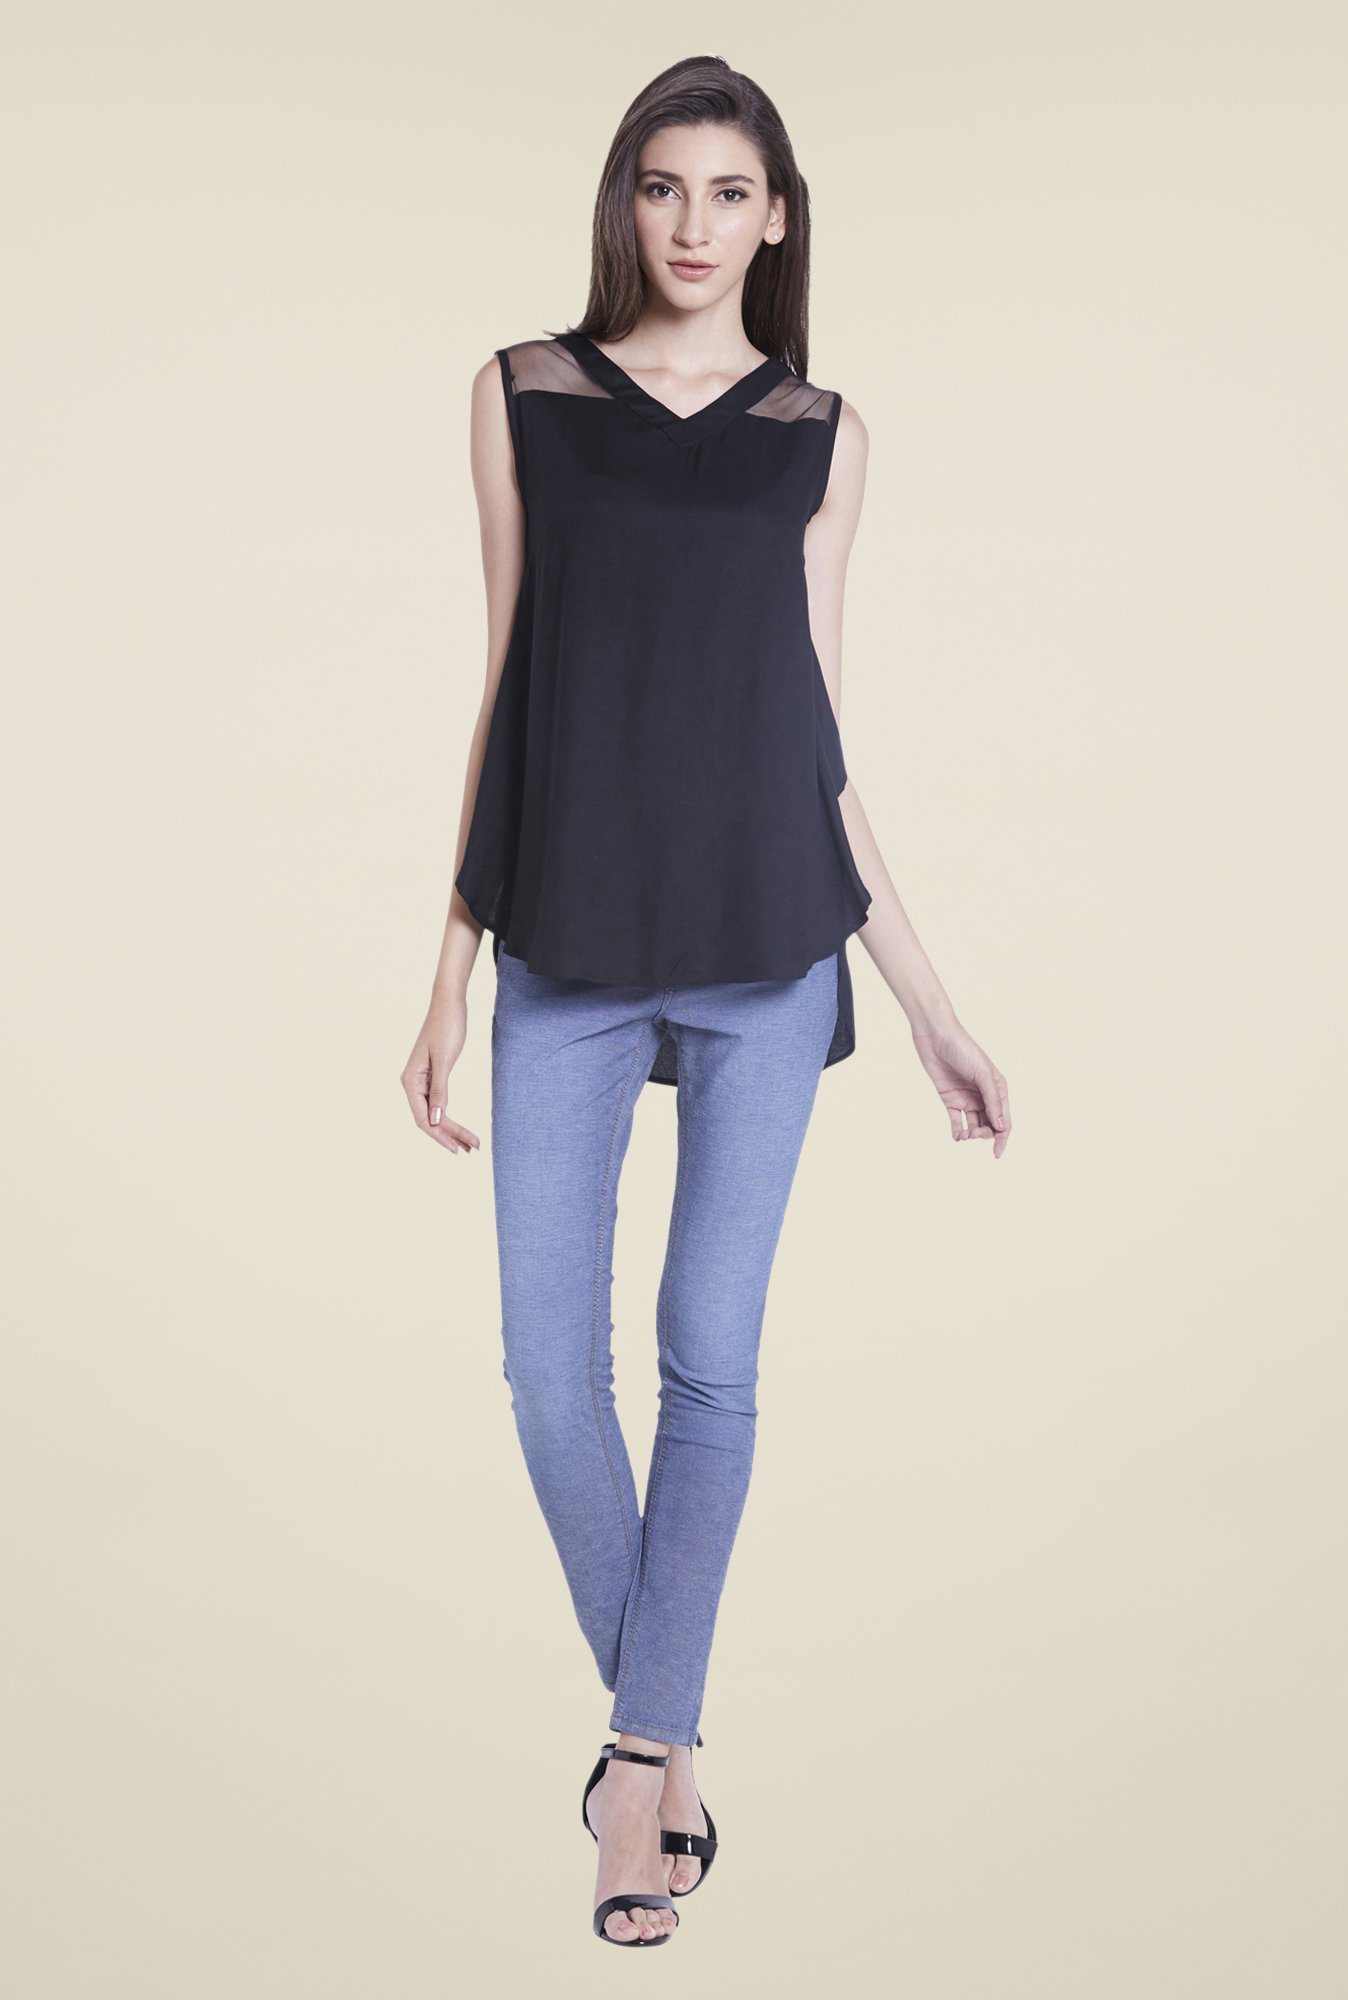 Globus Black Solid Sleeveless Top